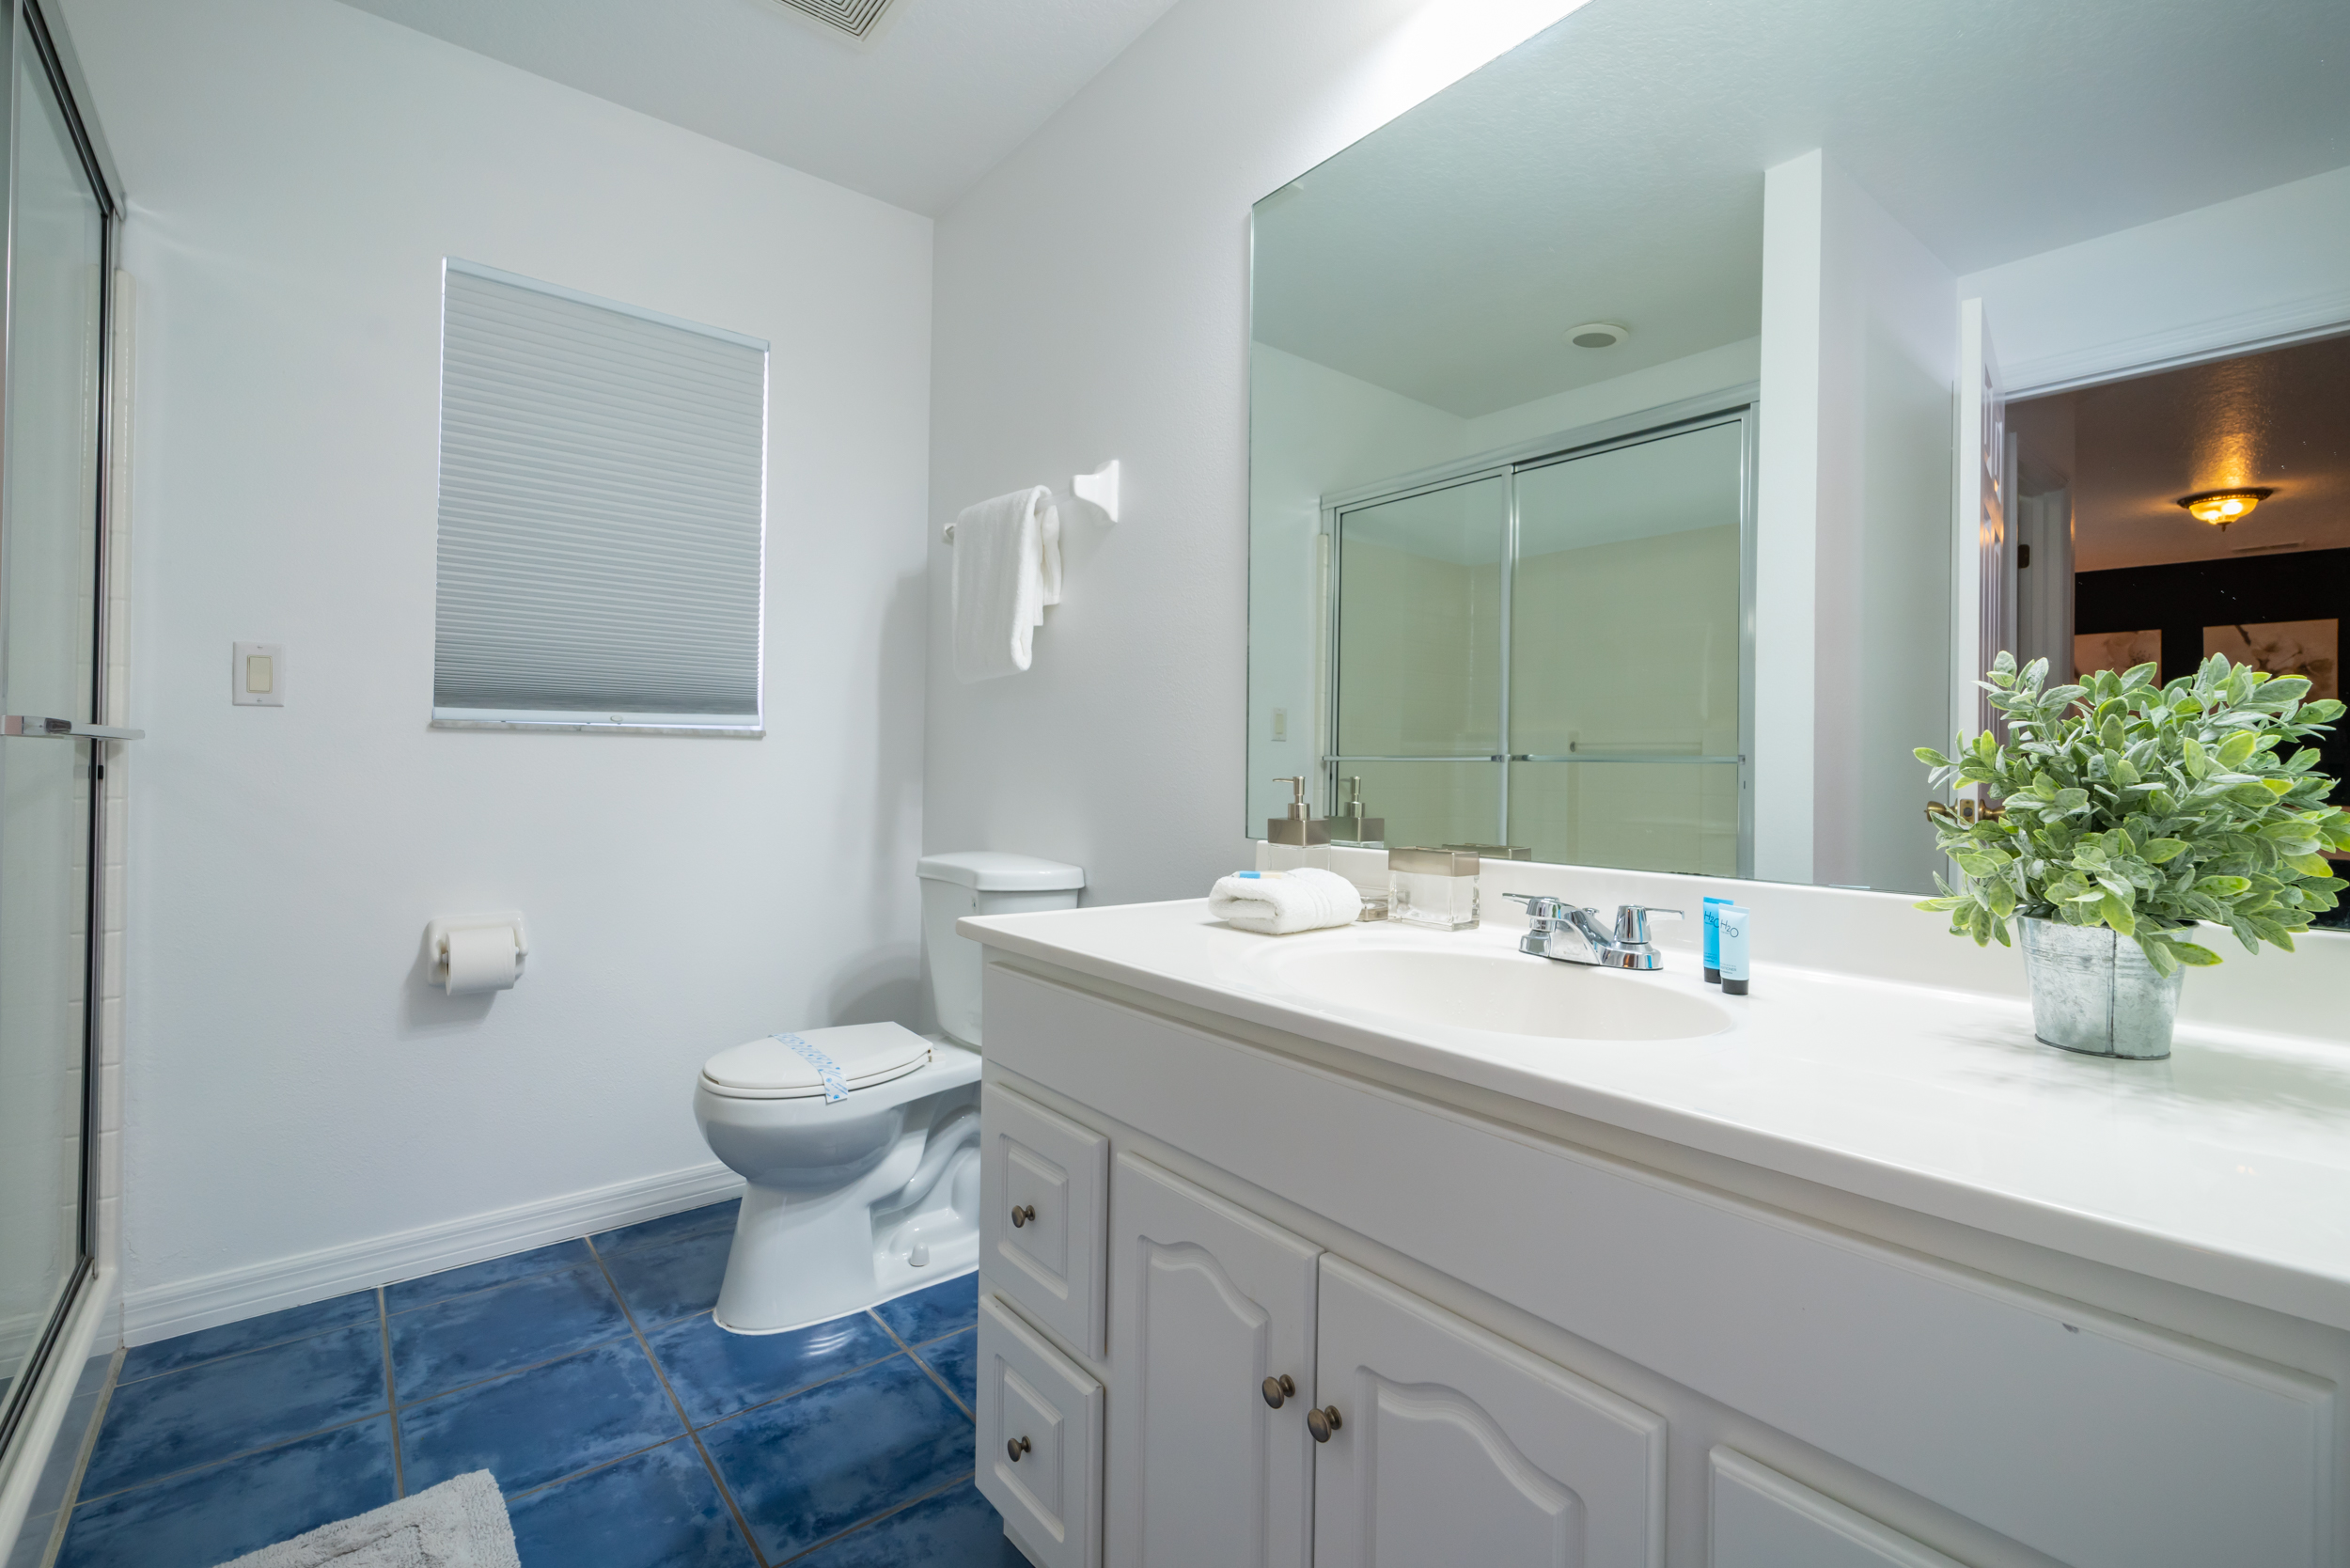 Master bath with stand up shower and single sink vanity